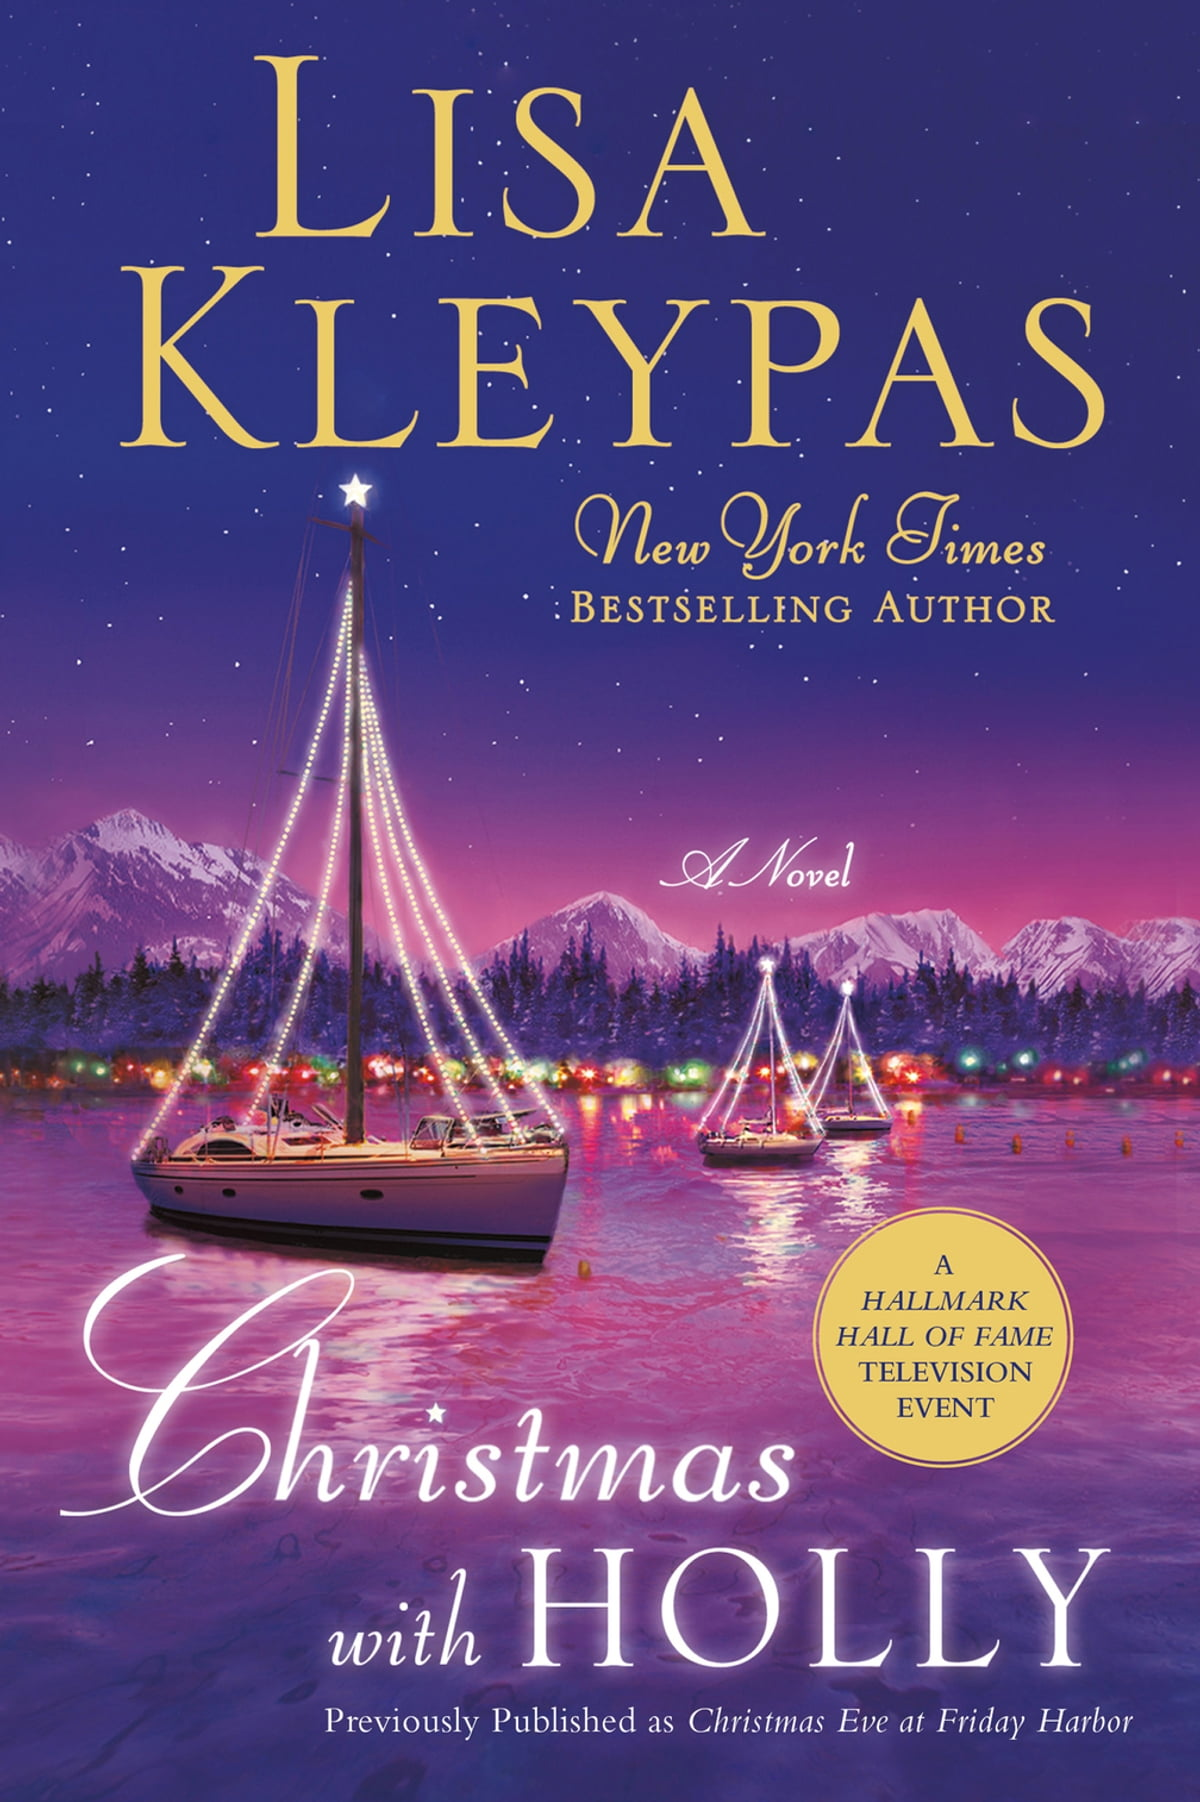 Libros De Lisa Kleypas Christmas With Holly Ebooks By Lisa Kleypas Rakuten Kobo